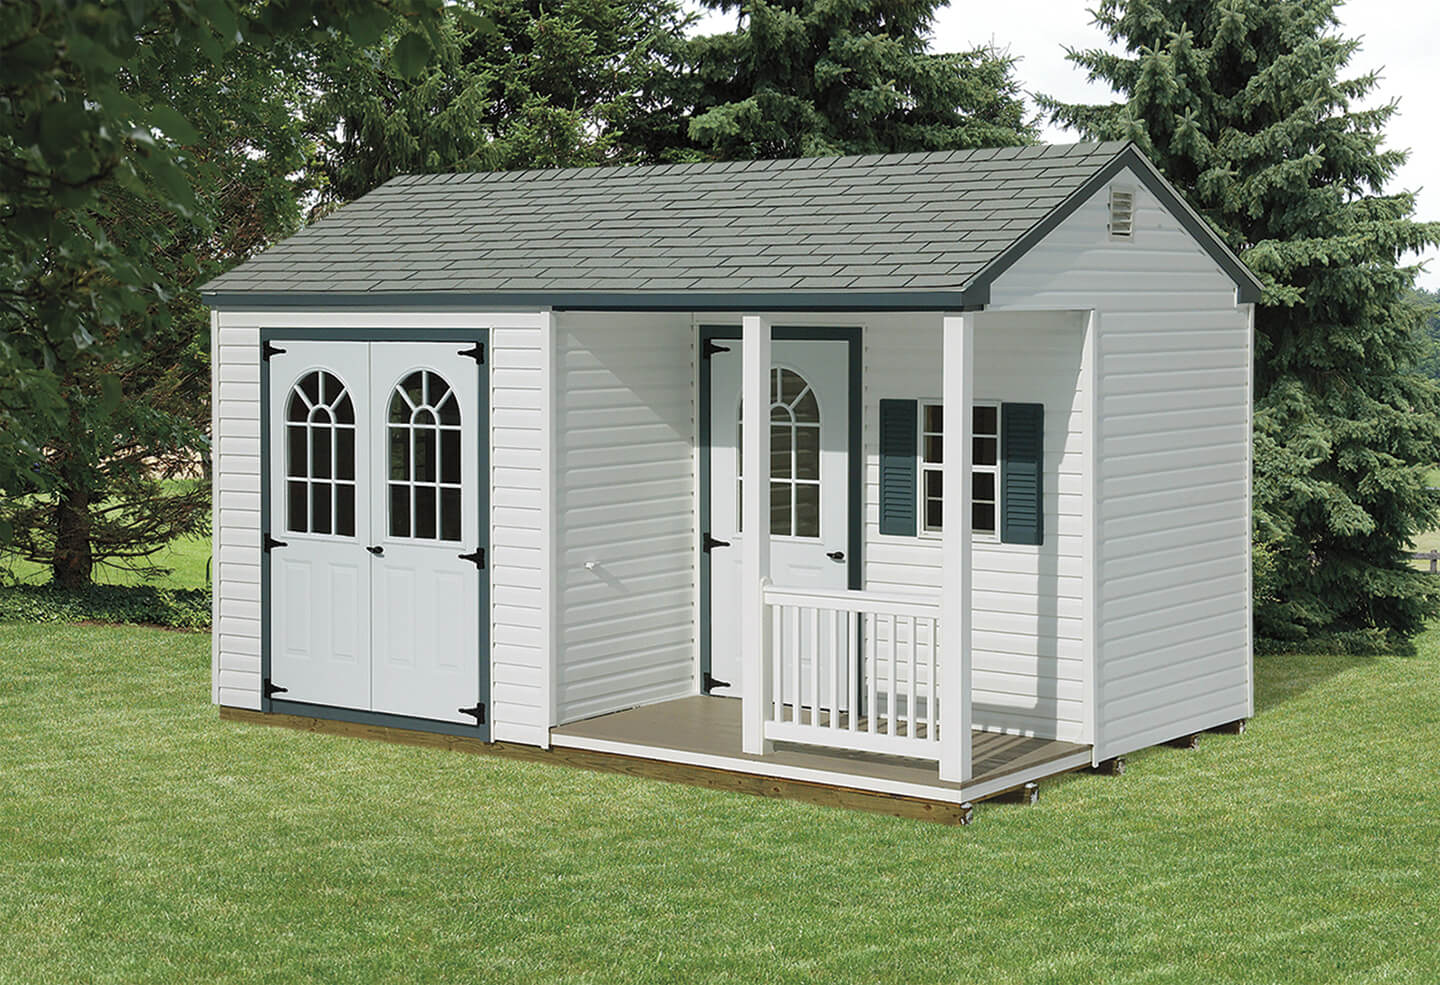 0x14 vinyl a frame with 4x8 porchl this model - Garden Sheds 7 X 14